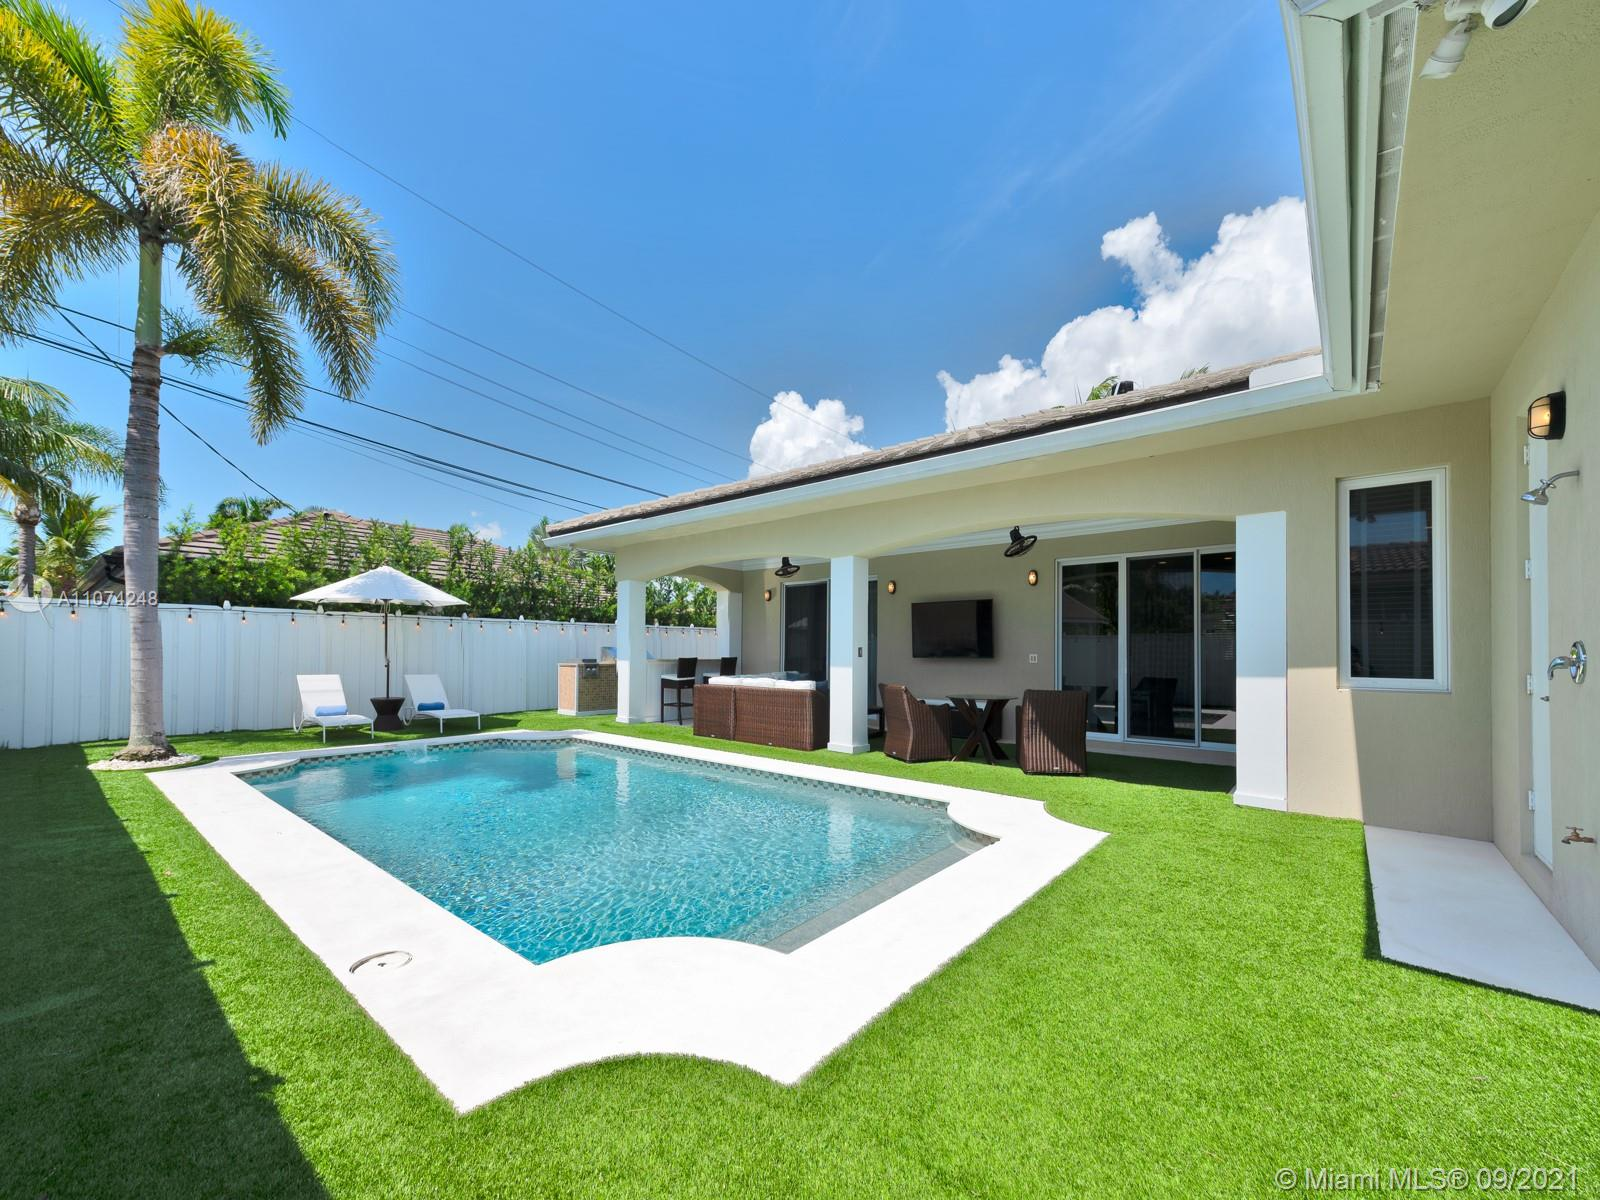 254 Corsair Ave, Lauderdale By The Sea, Florida 33308